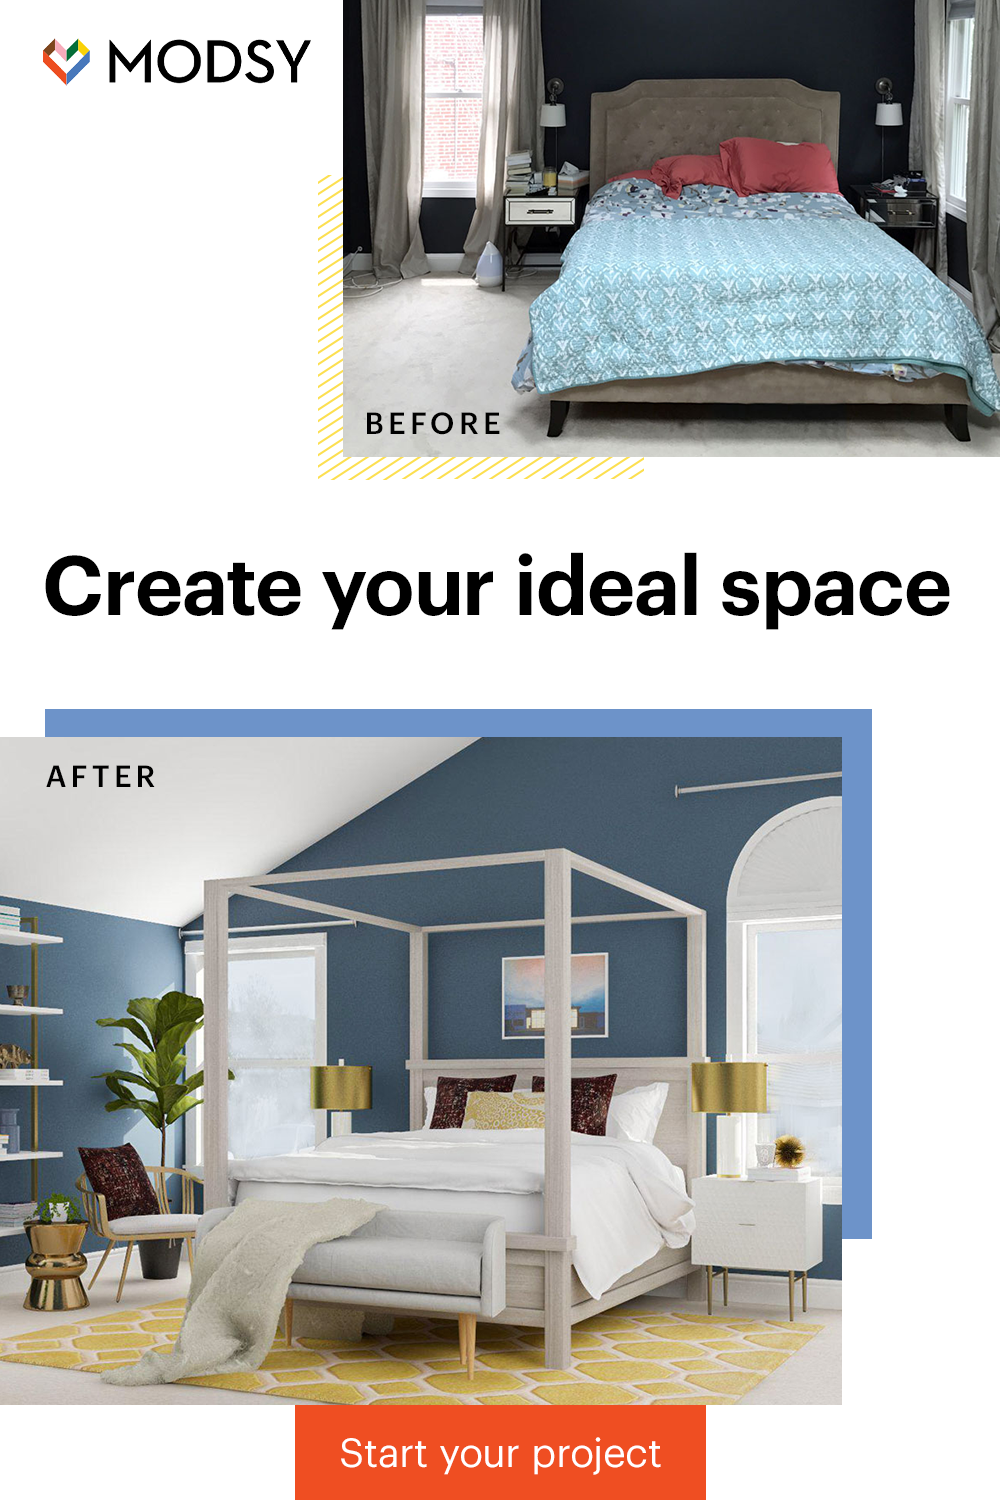 Online Interior Design With Modsy Living Rooms Dining Rooms Bedrooms More Modsy Room Design Bedroom Decor